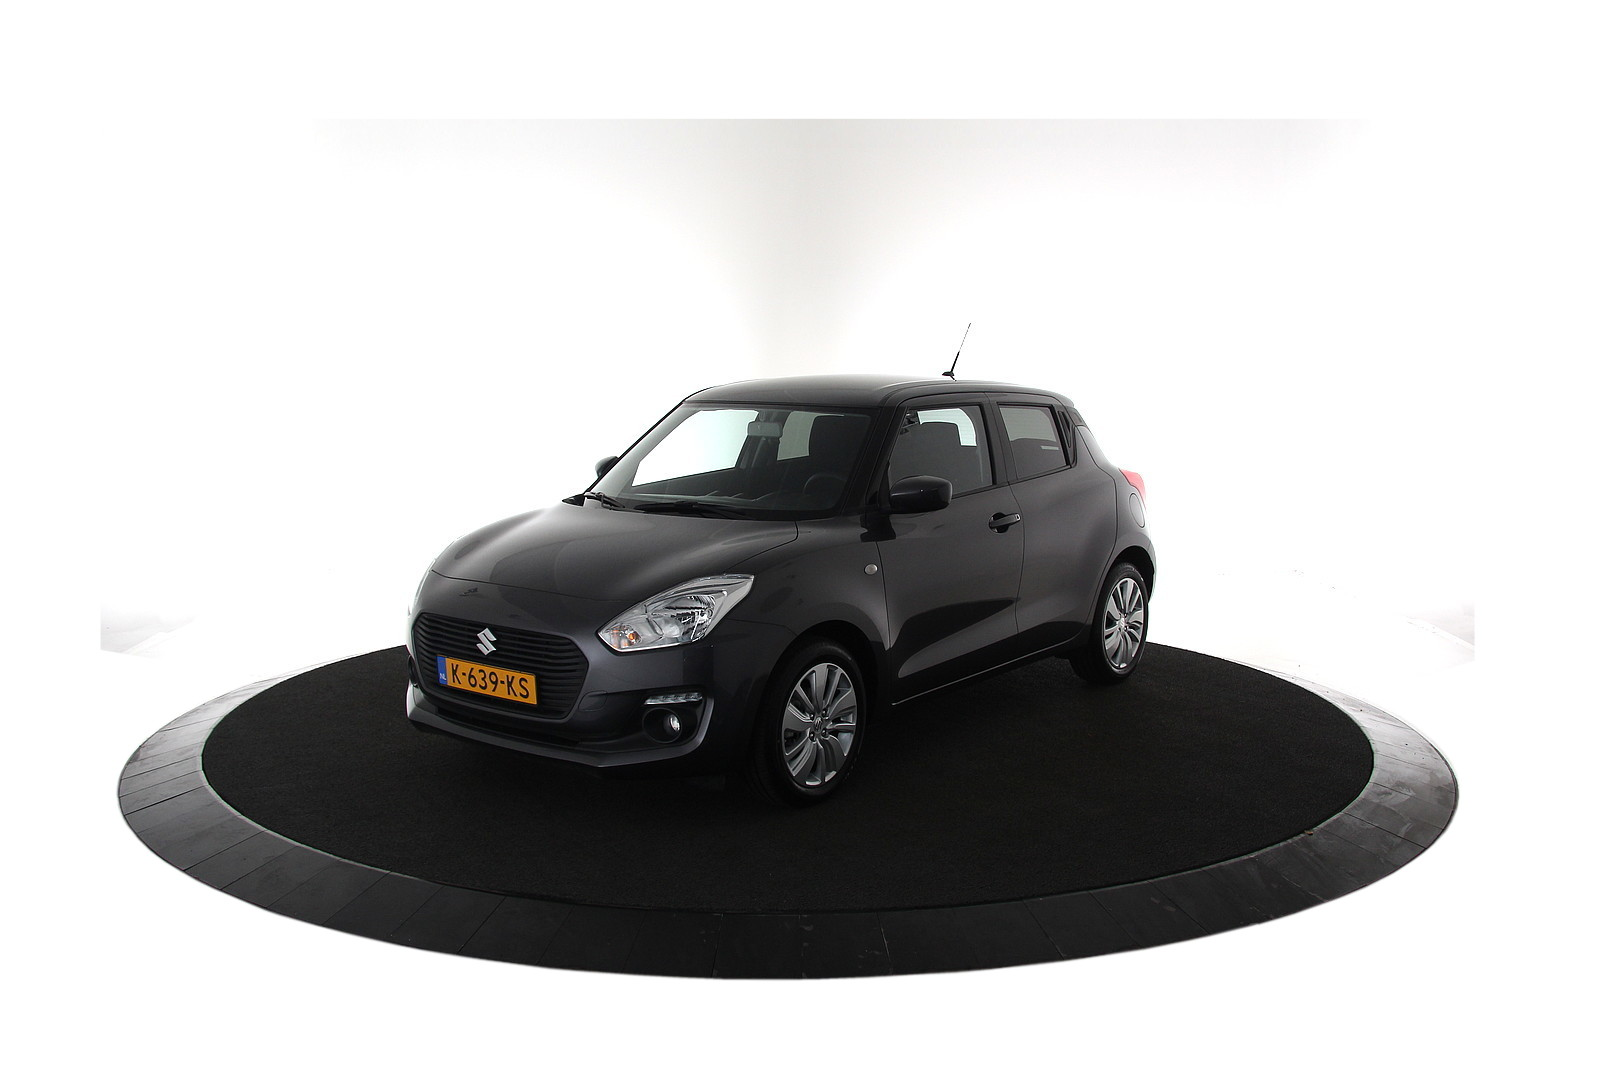 Suzuki Swift 1.2 Select Automaat